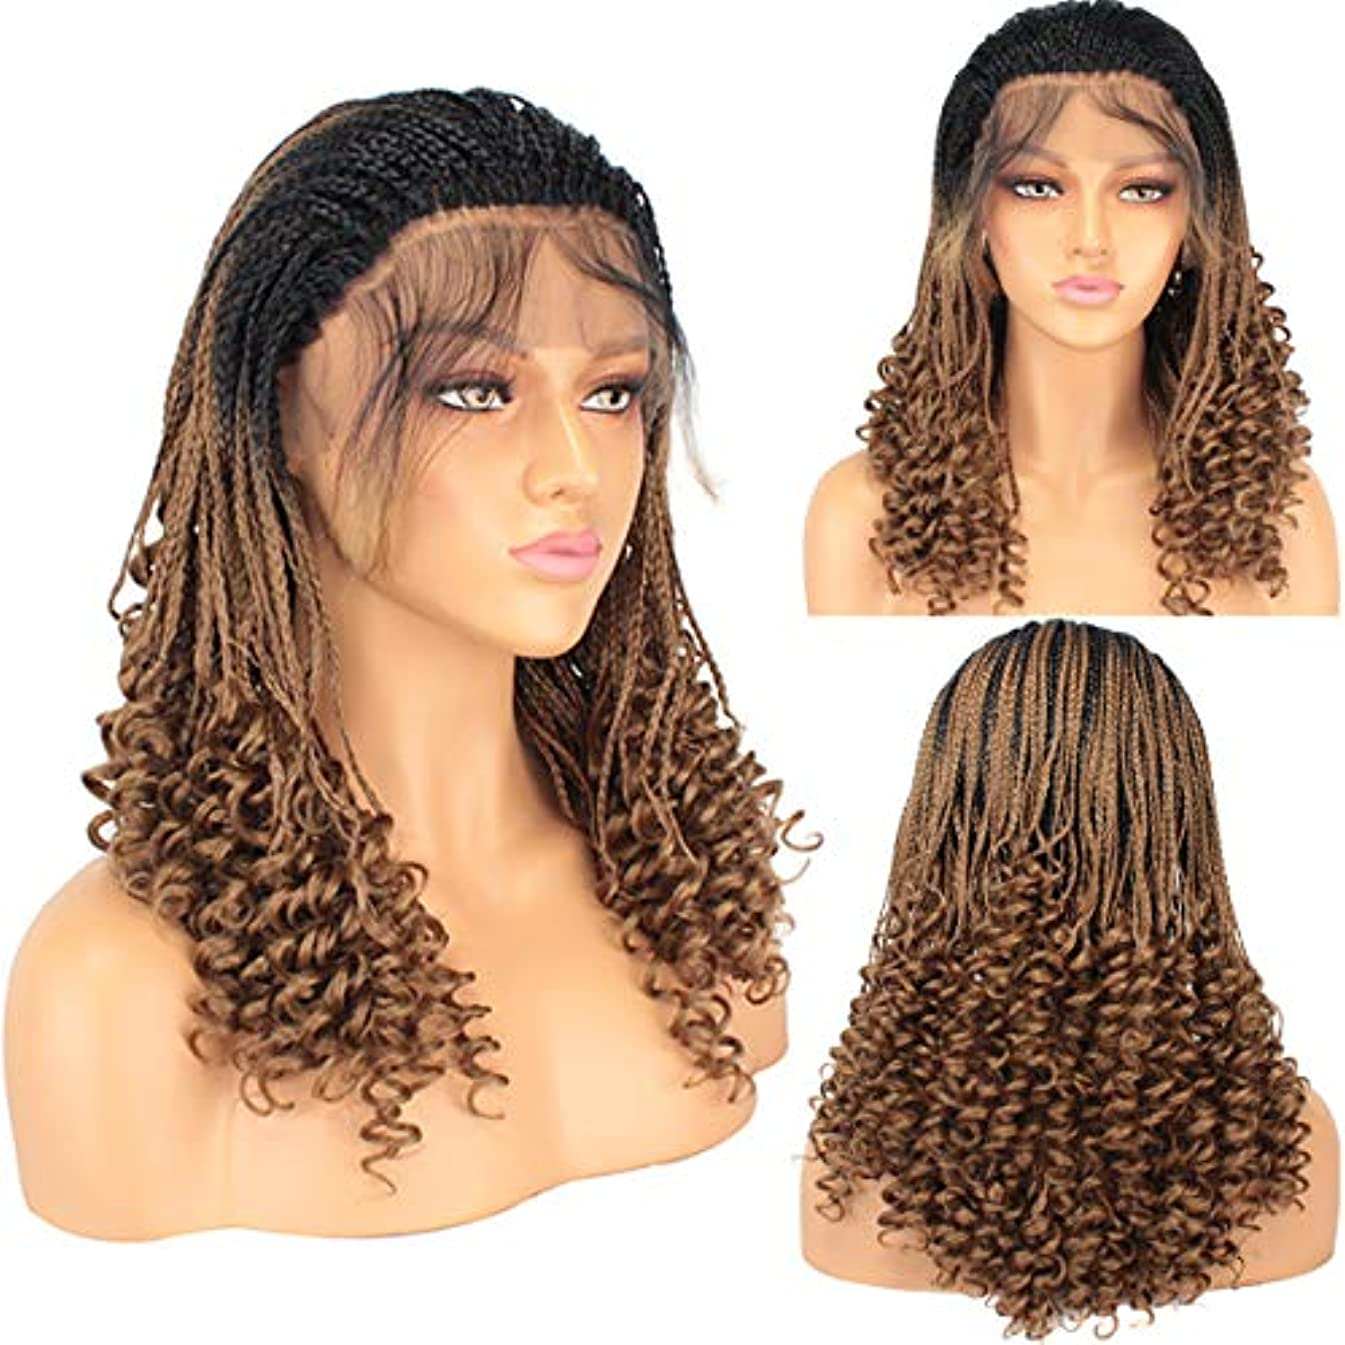 Leeven 20 Inch Micro Braids Wig With Curly End Lace Front Wig 1B27# Braiding Styles Cornrows Half Box Braided Wigs Synthetic African Hair for Black Women with Baby Hair